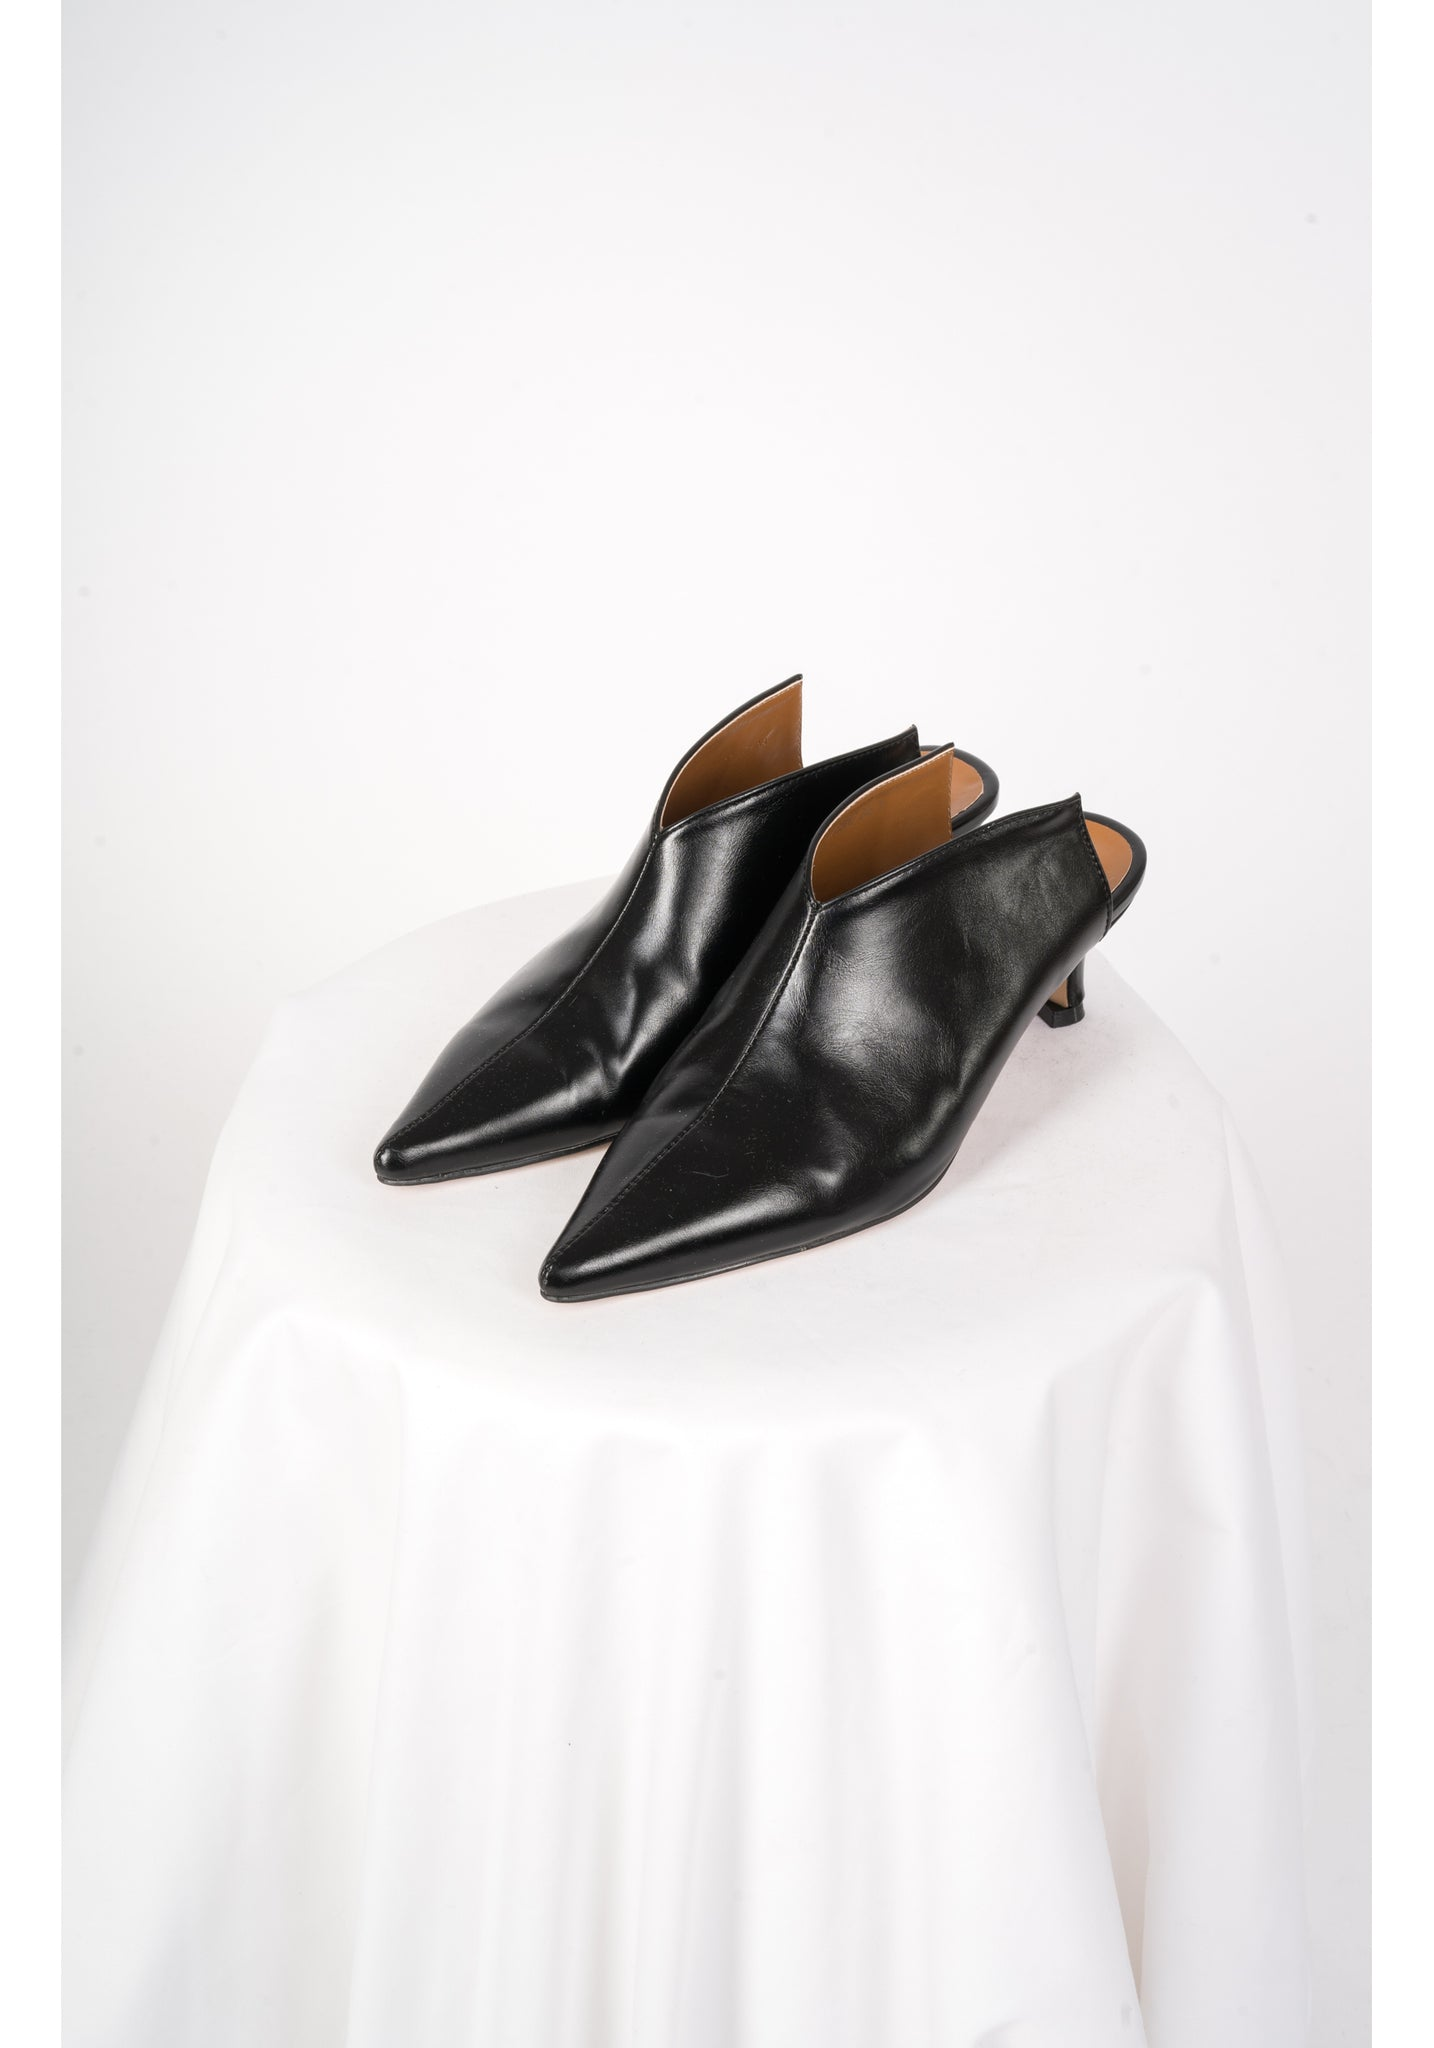 Arrow Pointed Mules Black - whoami